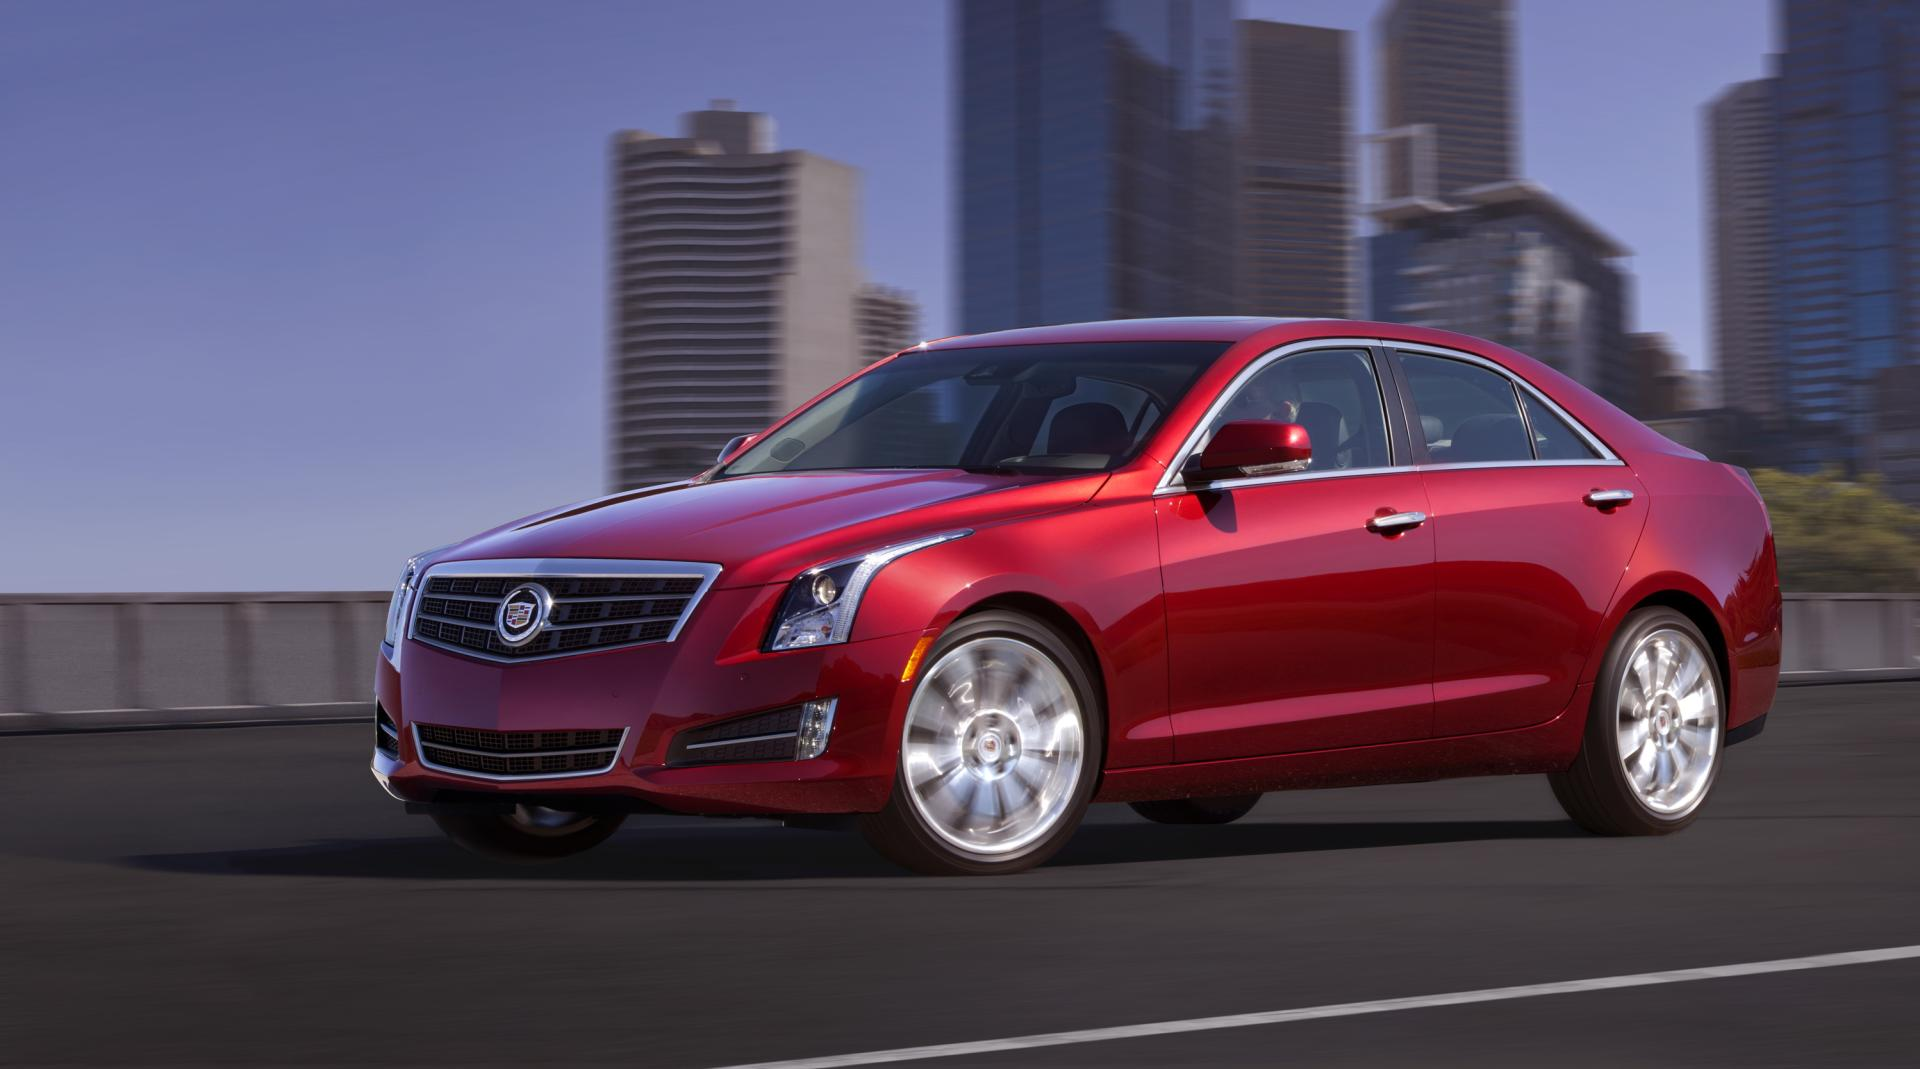 wallpaper ats detroit pictures cadillac picture